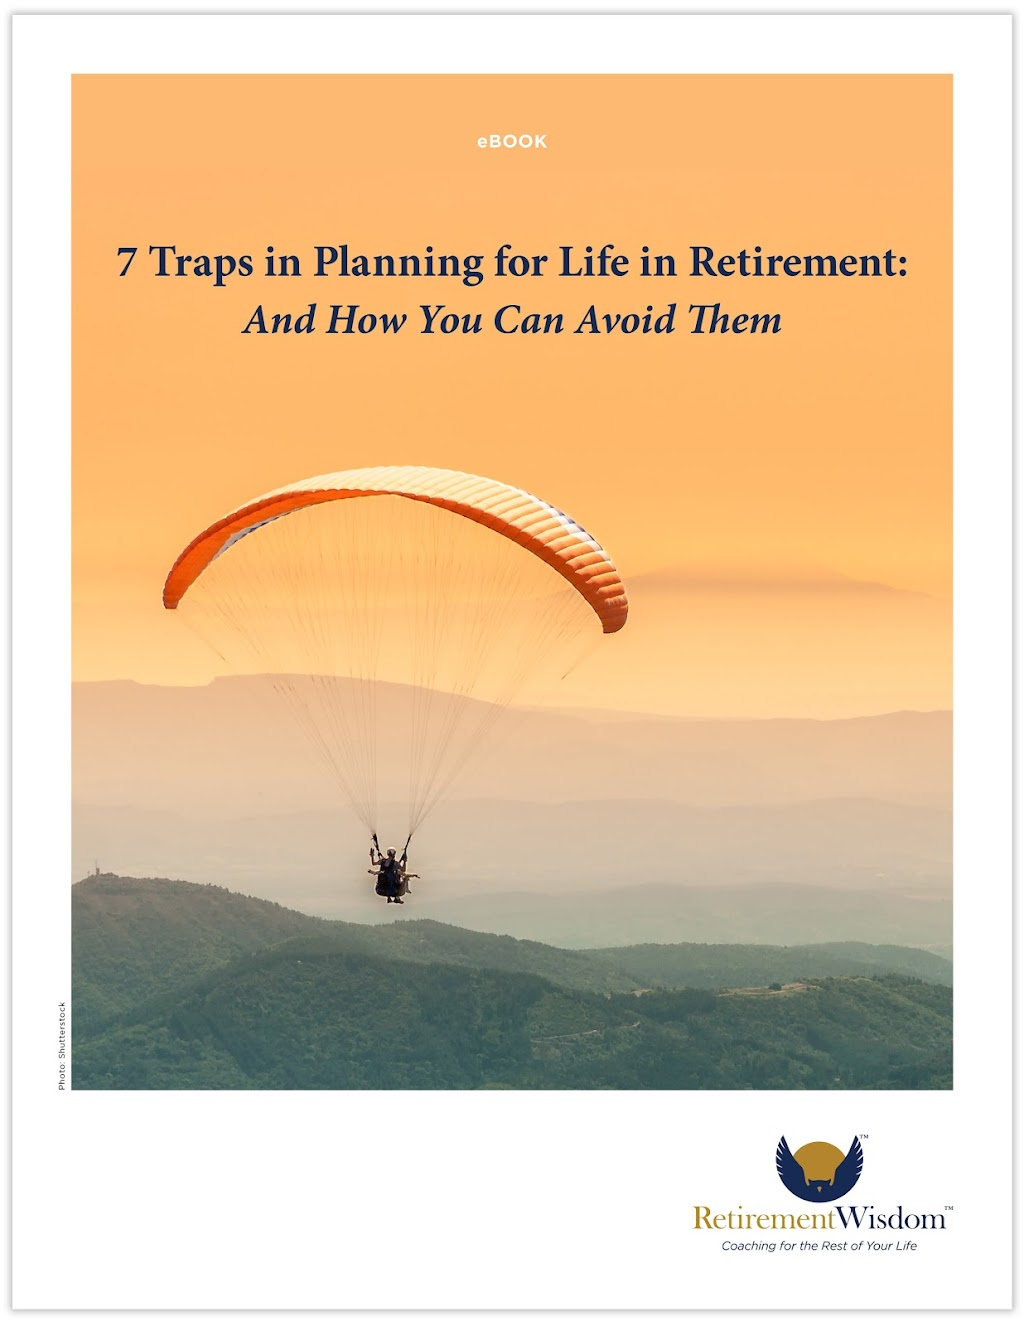 7 Traps in Planning for Life in Retirement